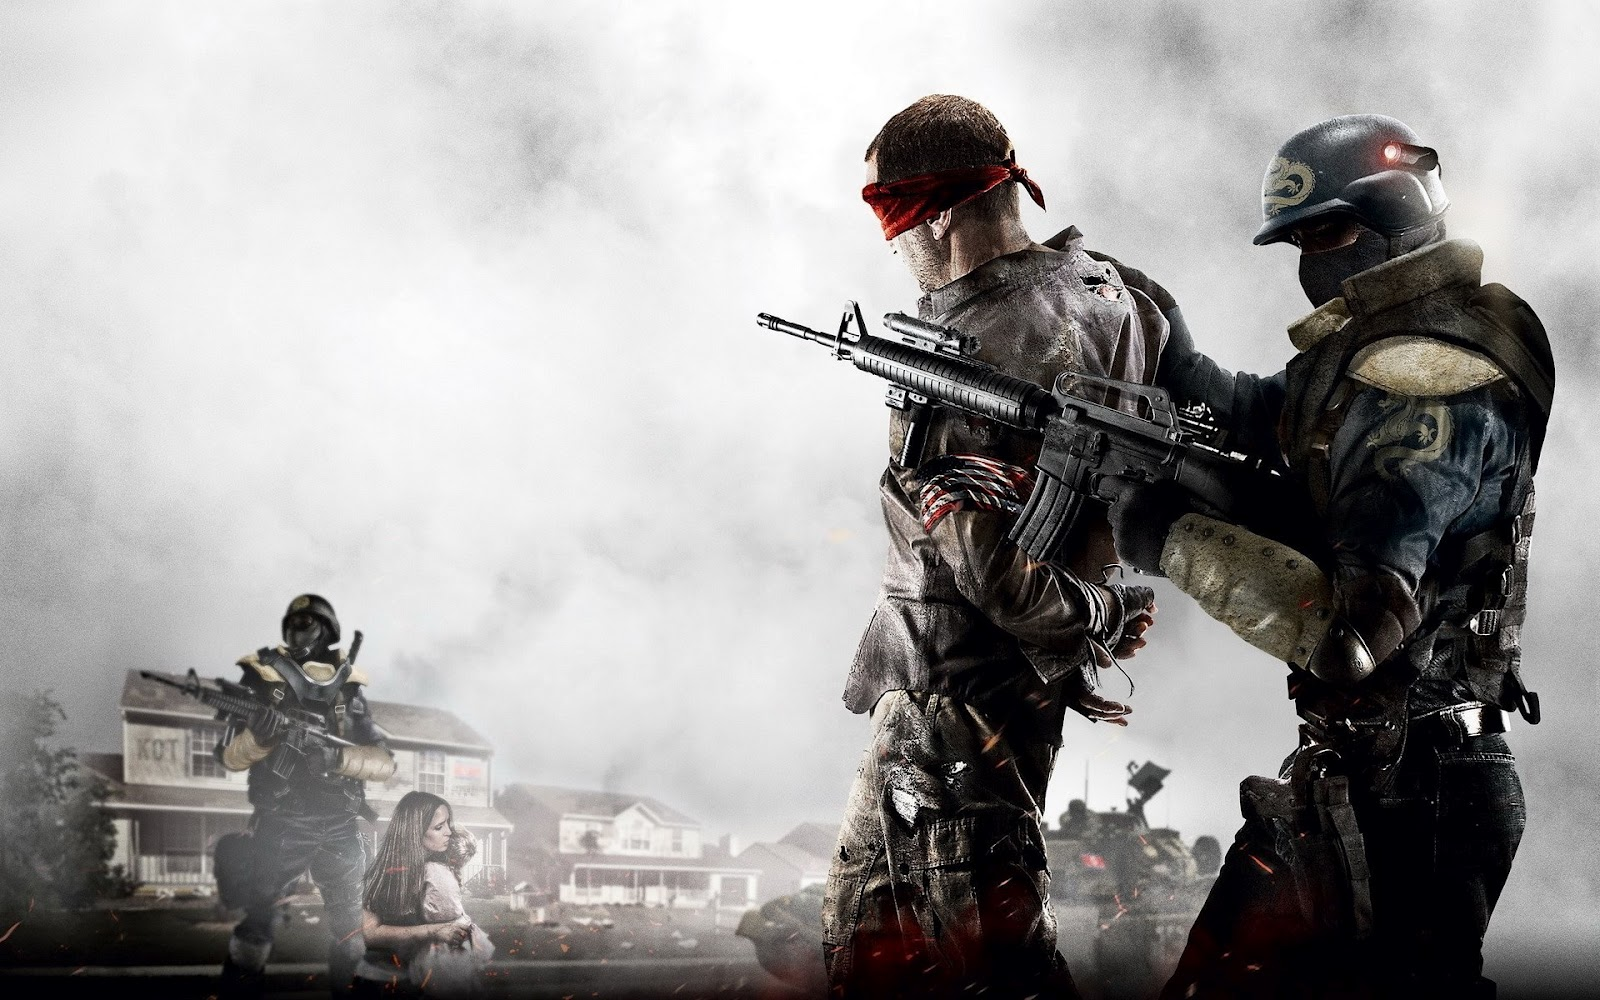 Homefront Awesome Game Graphic Shooter Soldier HD Wallpaper 1600x1000